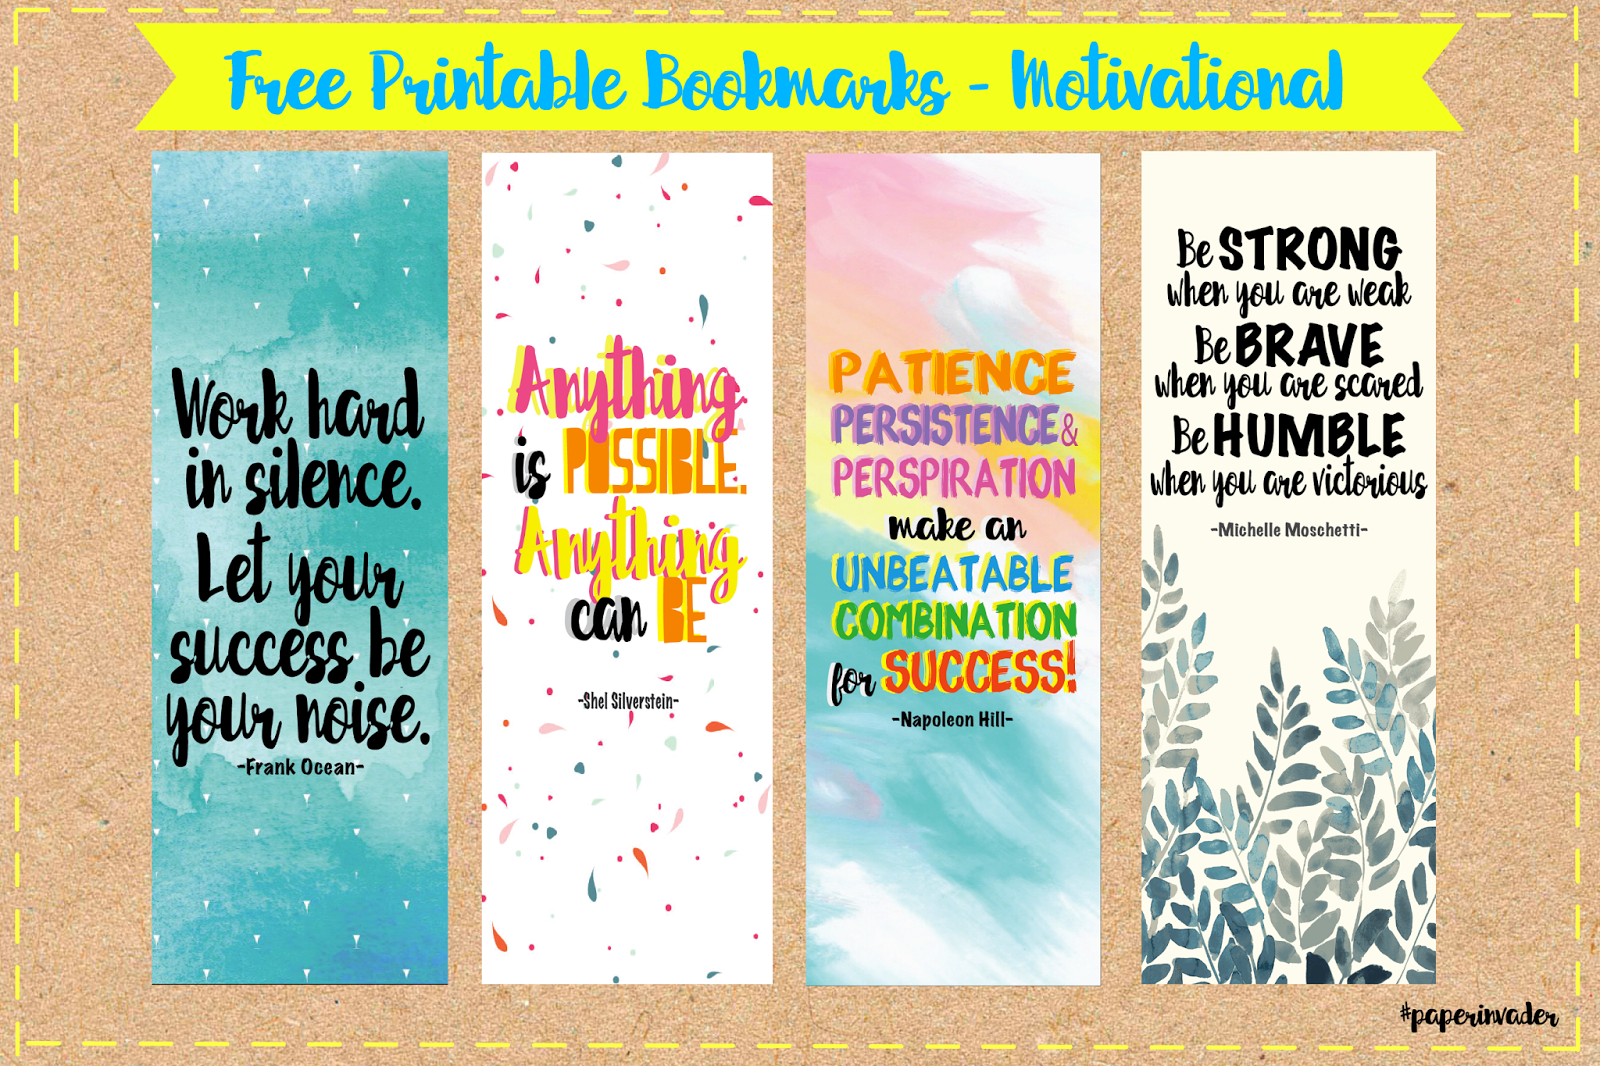 Paper Invader: Free Printable Bookmarks - Motivational - Free Printable Bookmarks